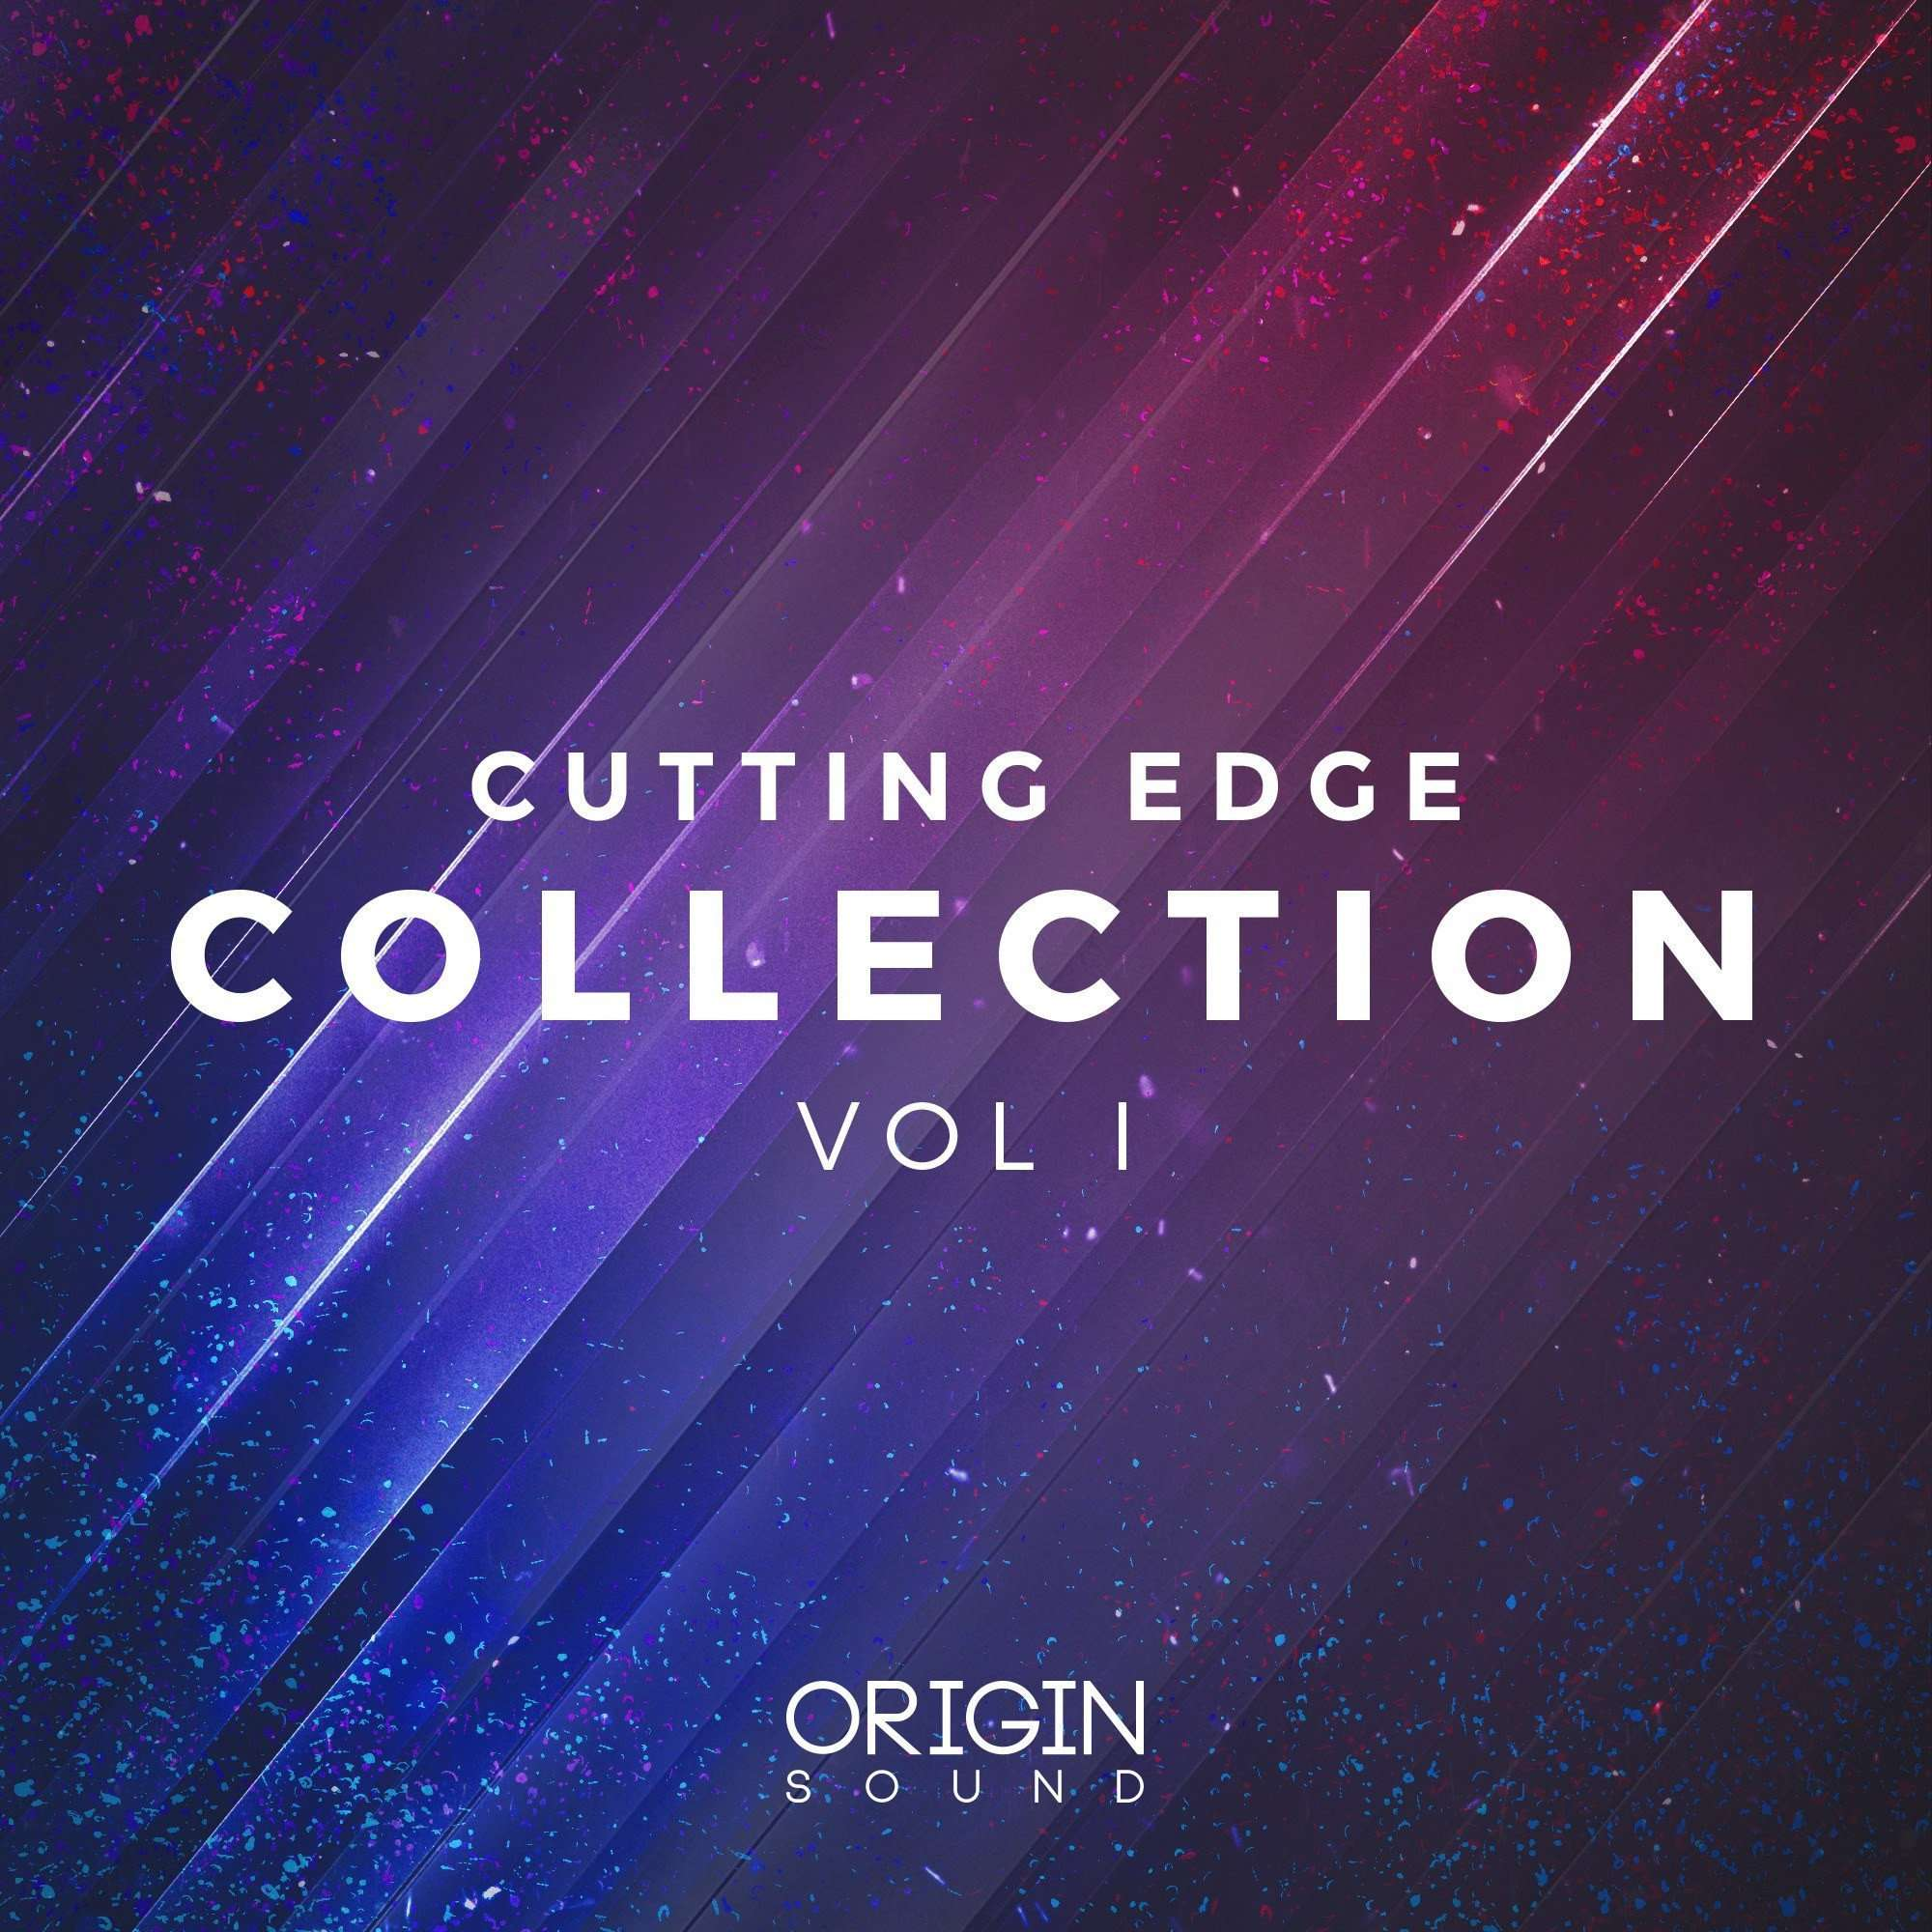 Cutting Edge Collection - Vol 1 Sample Pack, Origin Sound, Origin Sound - Origin Sound samples royalty free fundamental ambience pack edm electronic ableton live fl studio logic pro piano drums keys bass chords midi melodies IDM organic downtempo tisoki presets elysian utopia free samples